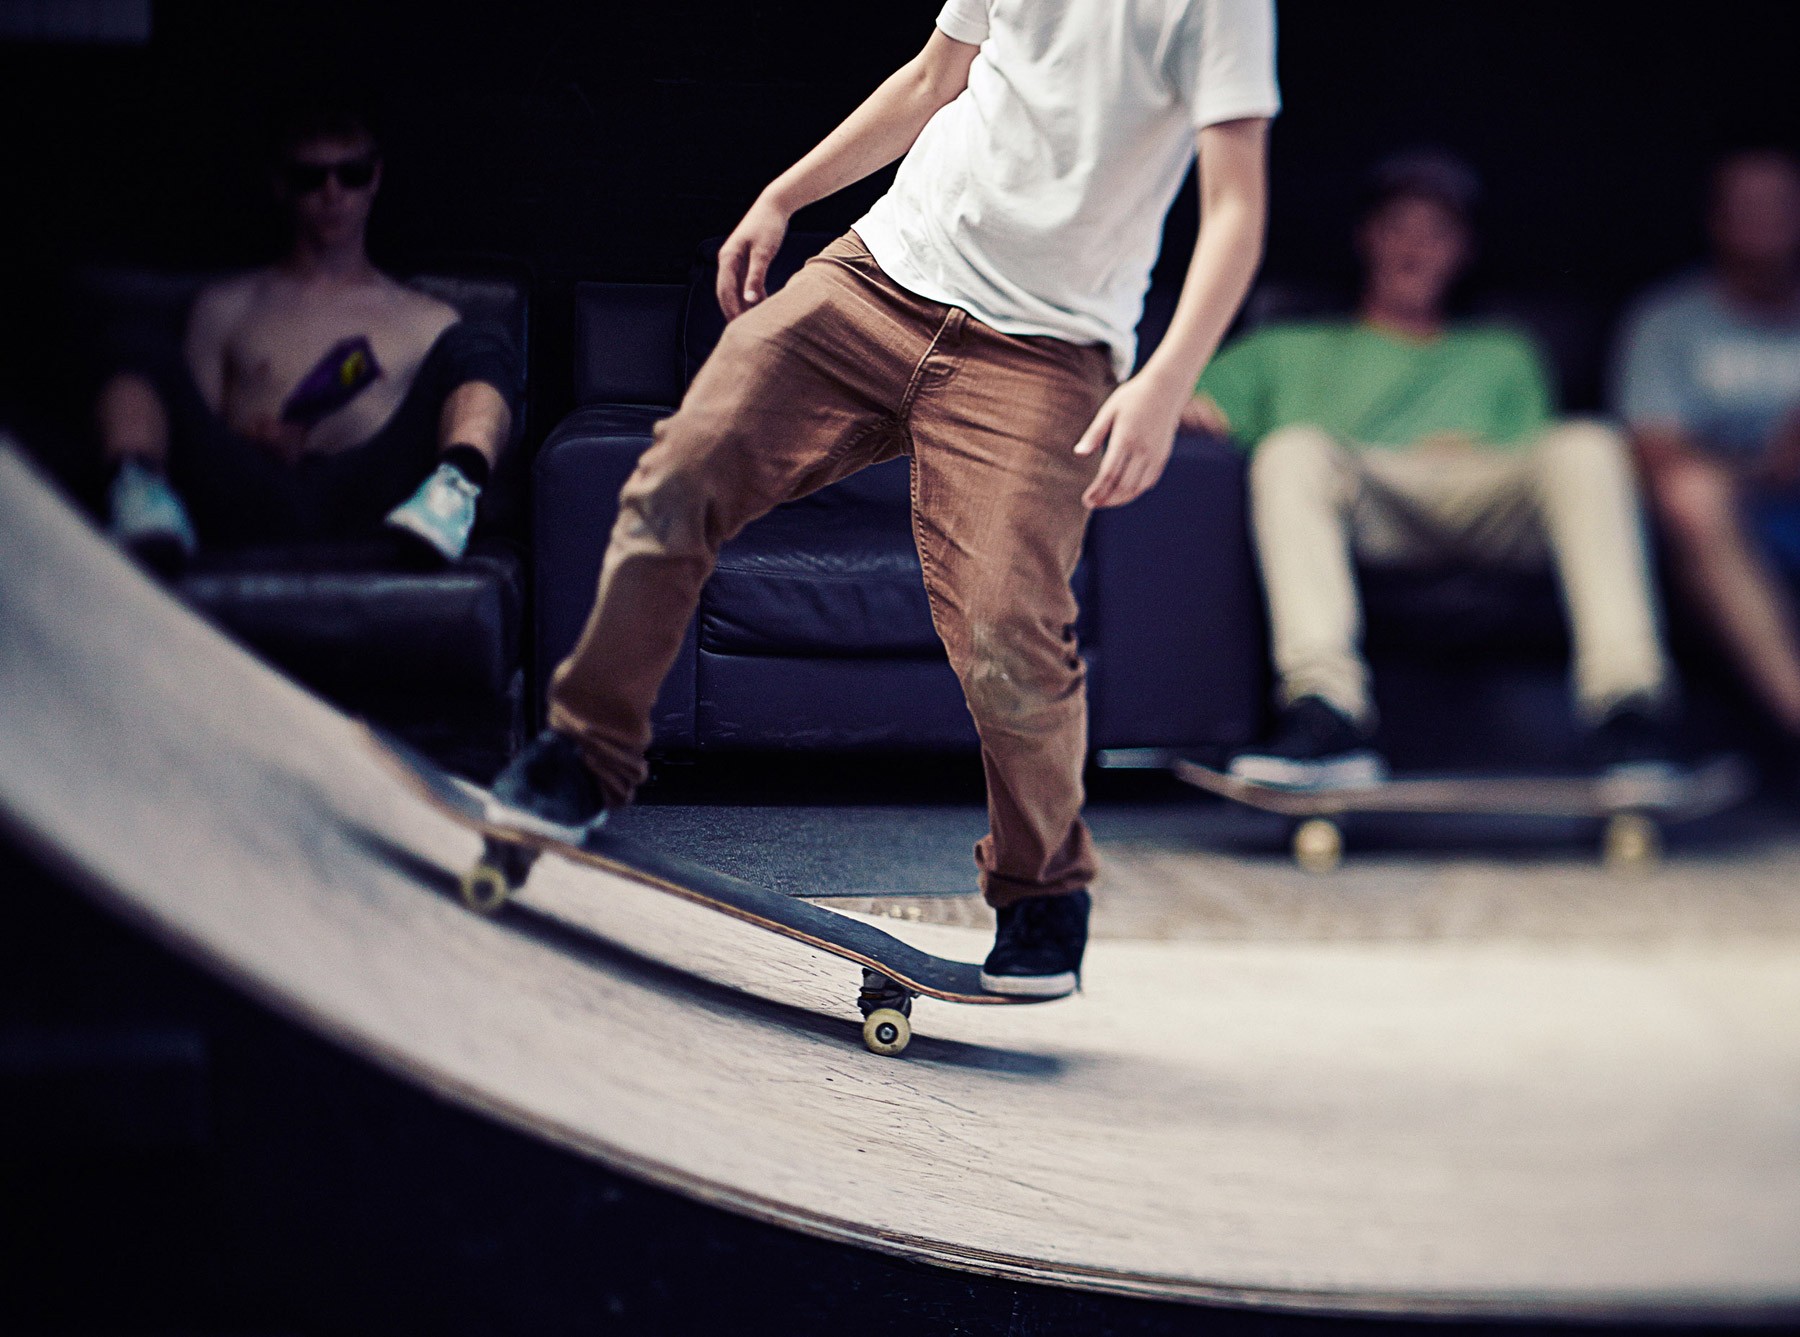 Skateboarding at Empire Skatepark